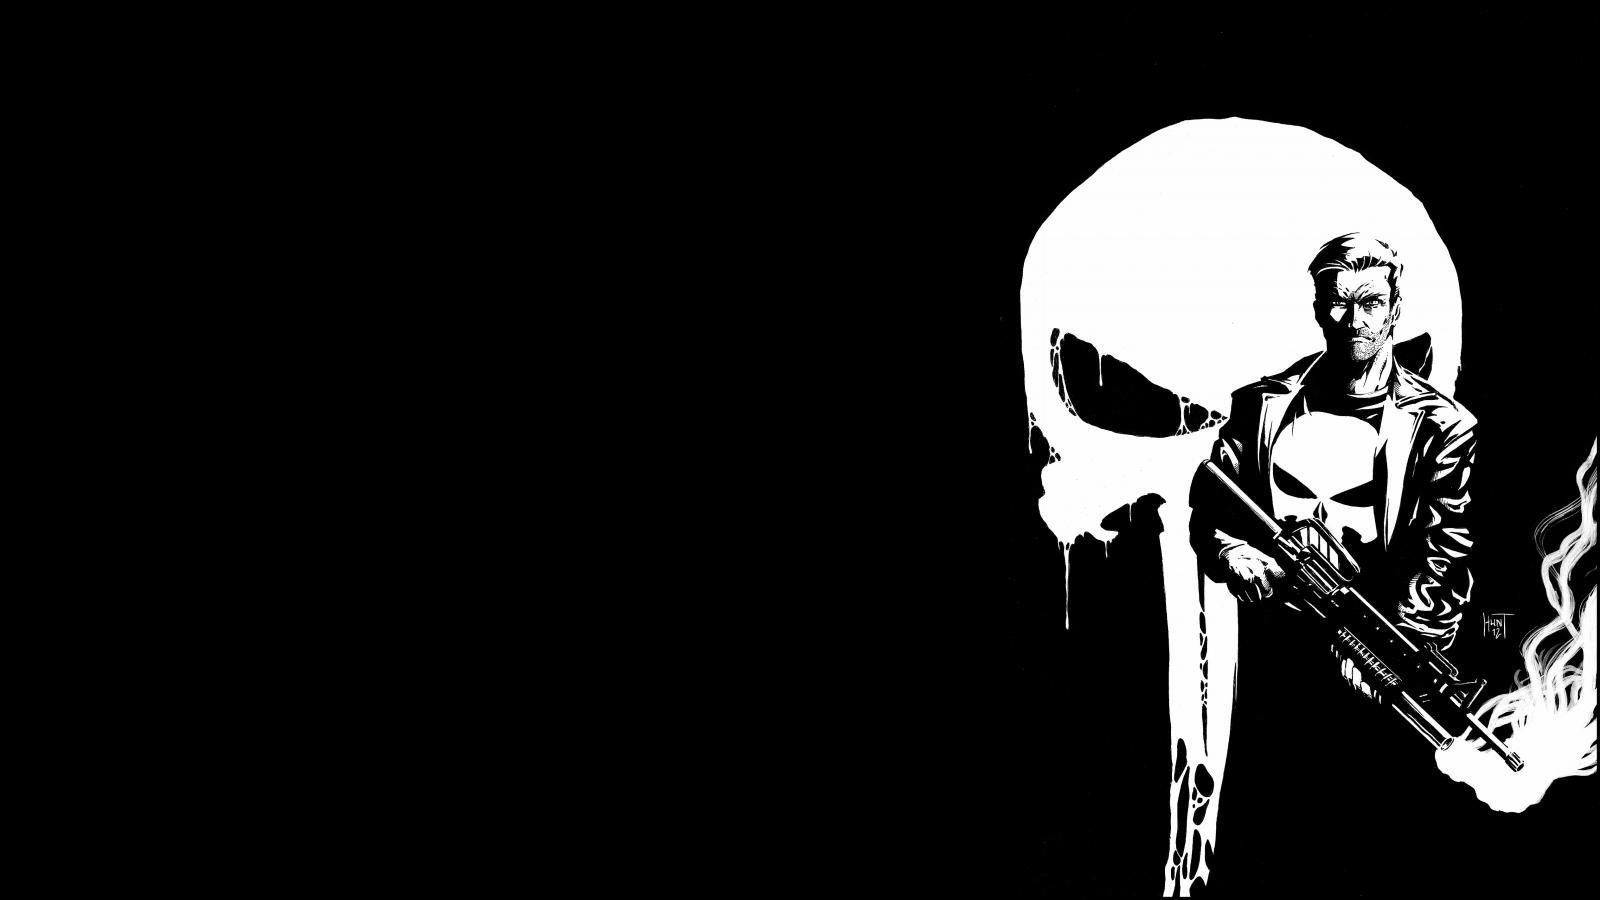 Free Download The Punisher Wallpaper Id 134607 Hd 1600x900 For Desktop